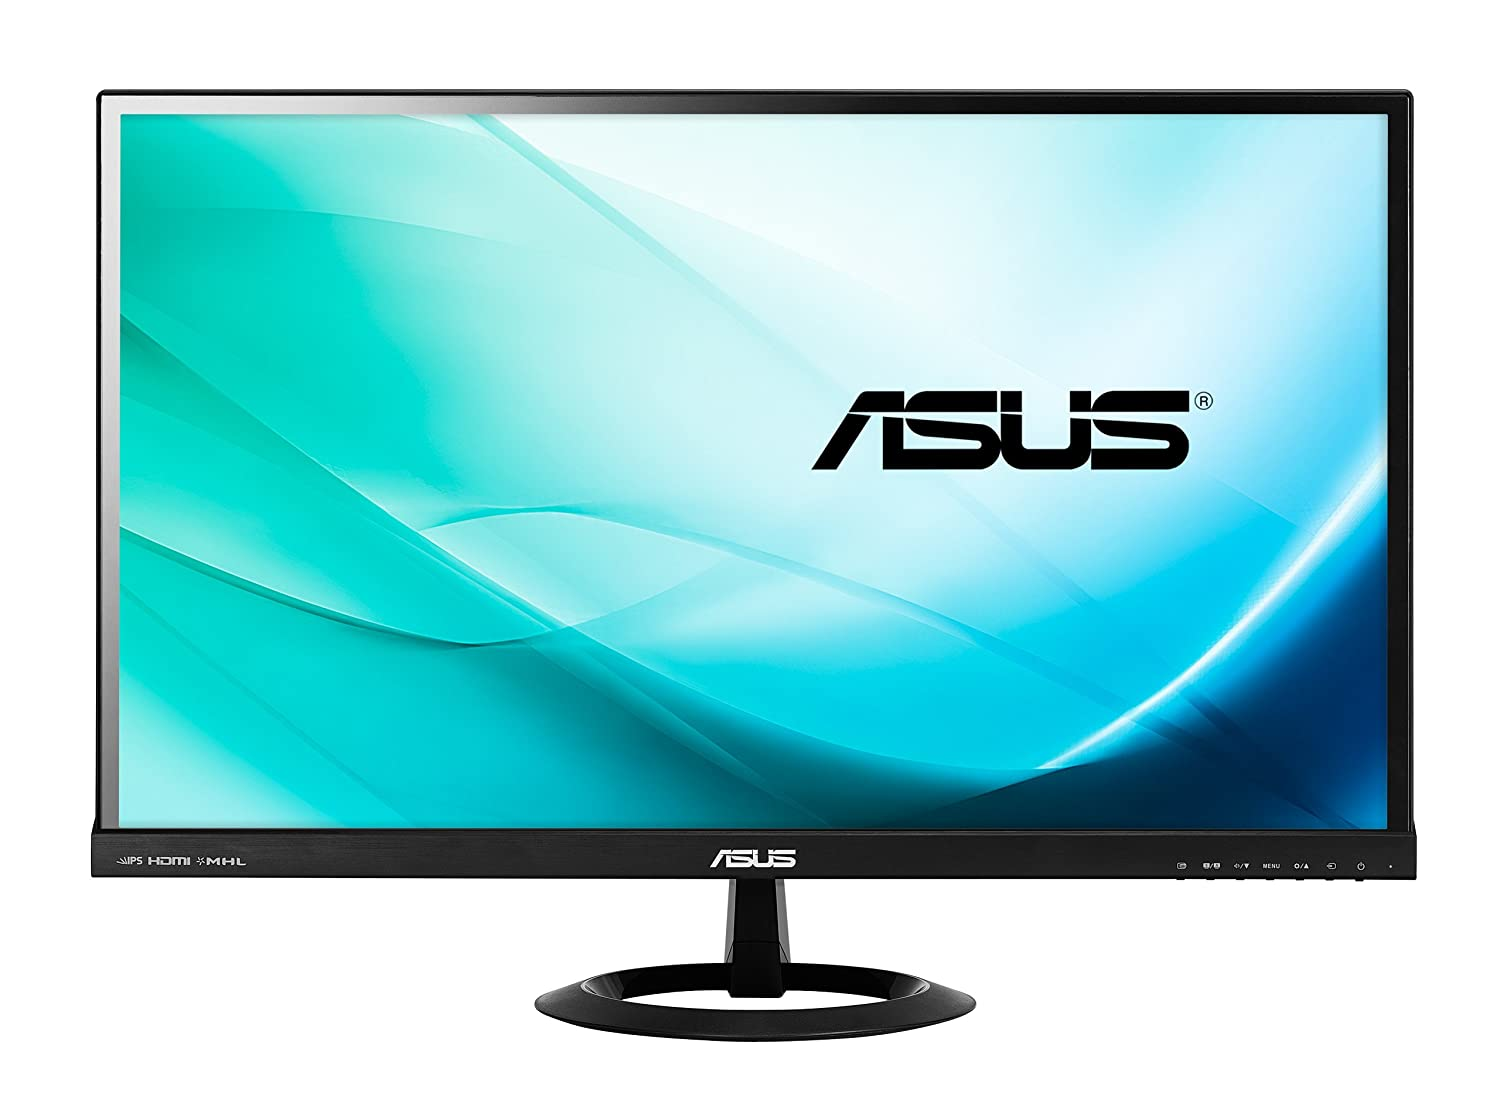 Asus VX279H-W 27 inch Widescreen LED White Monitor